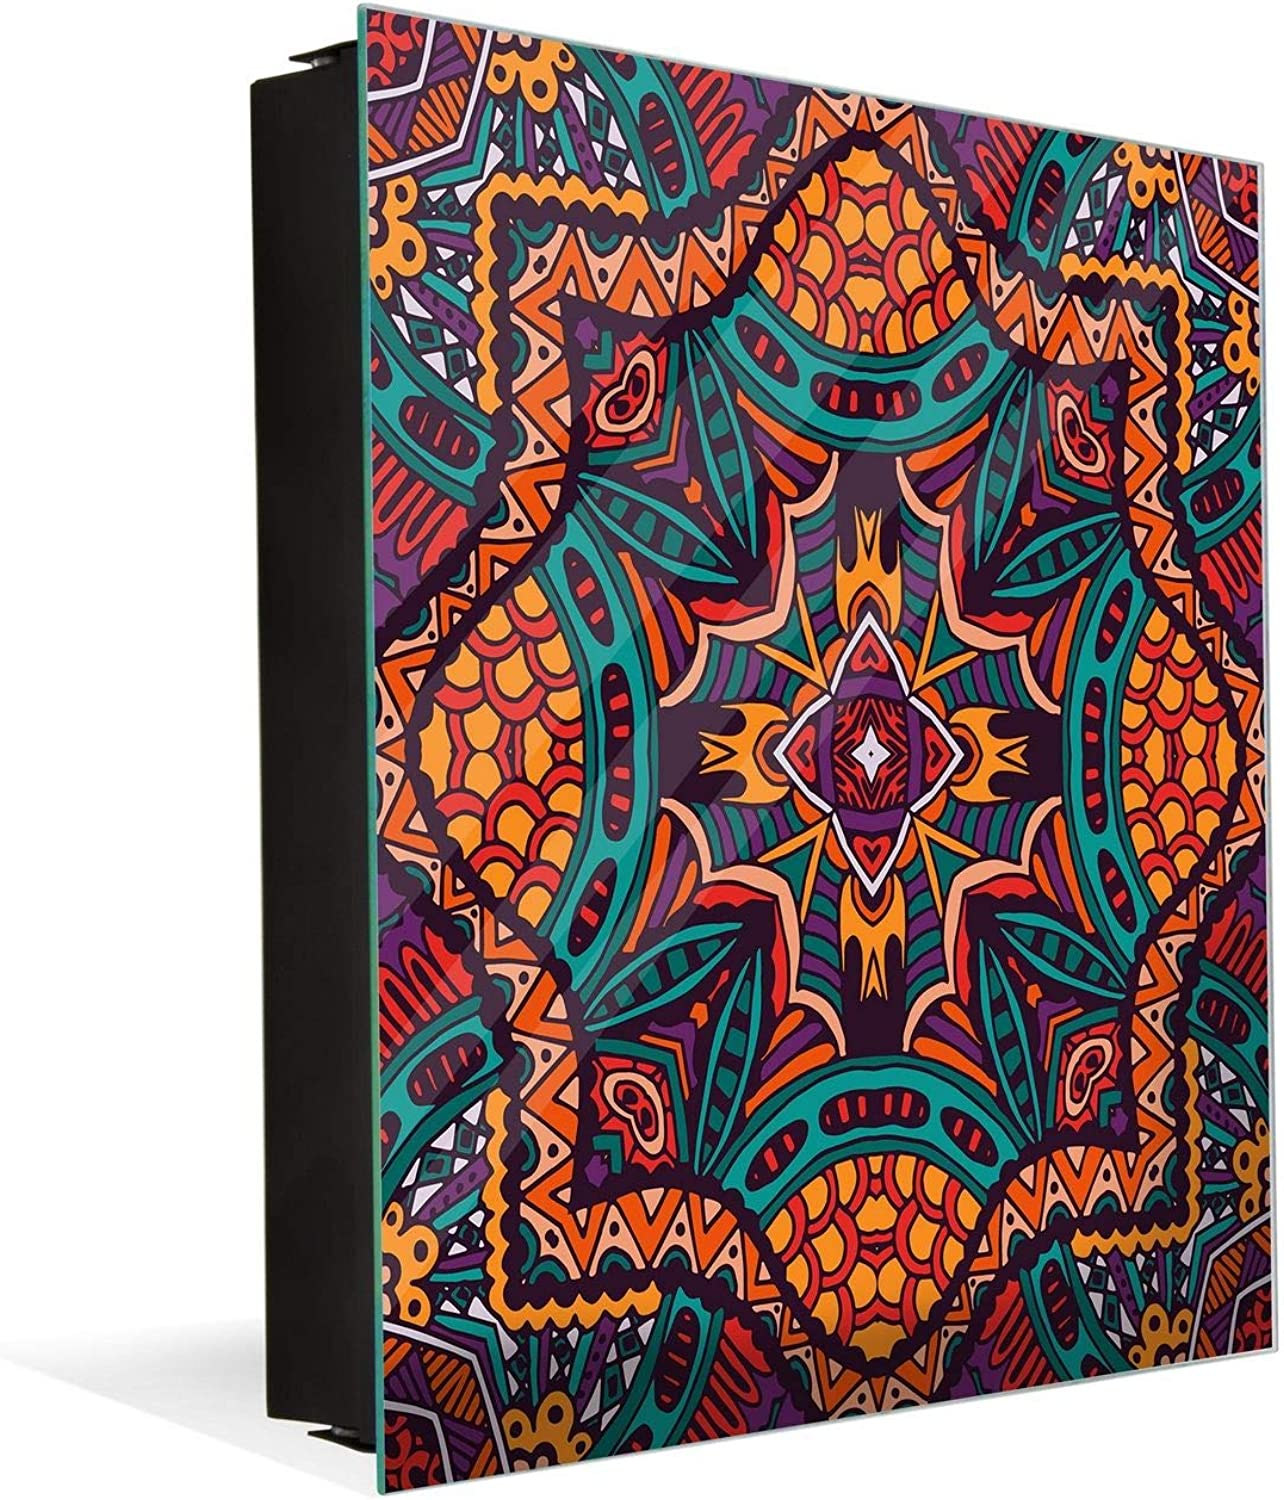 Concept Crystal Key Cabinet Together with Magnetic Glass Markerboard K01 Ethnic Print